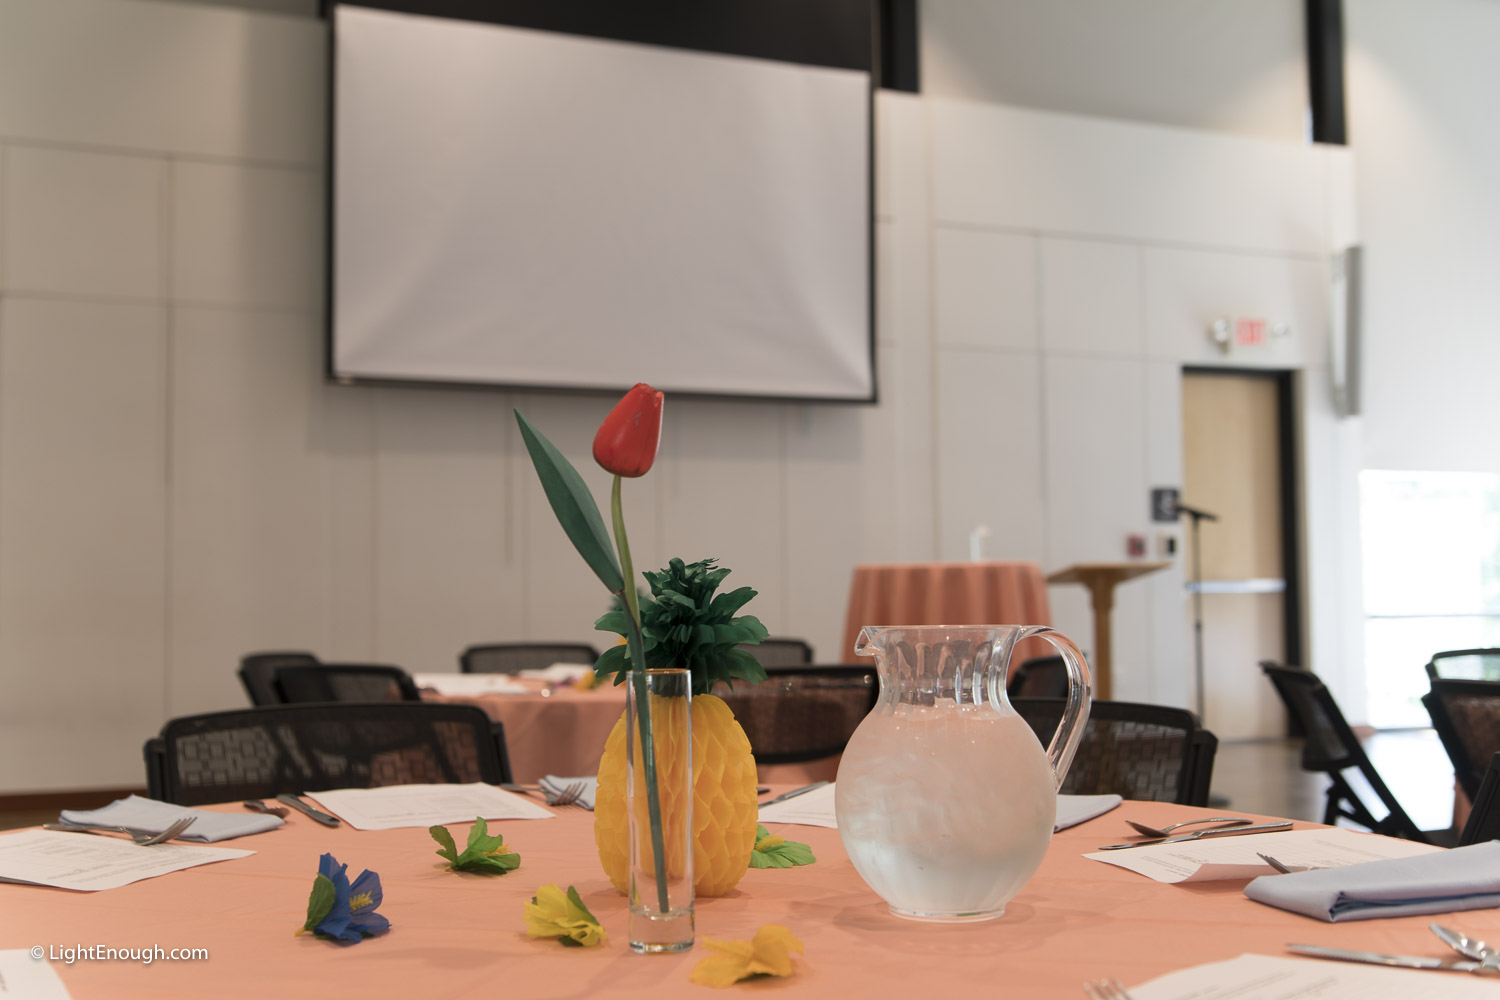 Table settings at the June 2017 meeting of the UUCA Day Alliance. Allen Keiswetter speaker. Photos by John St Hilaire / LightEnough.com